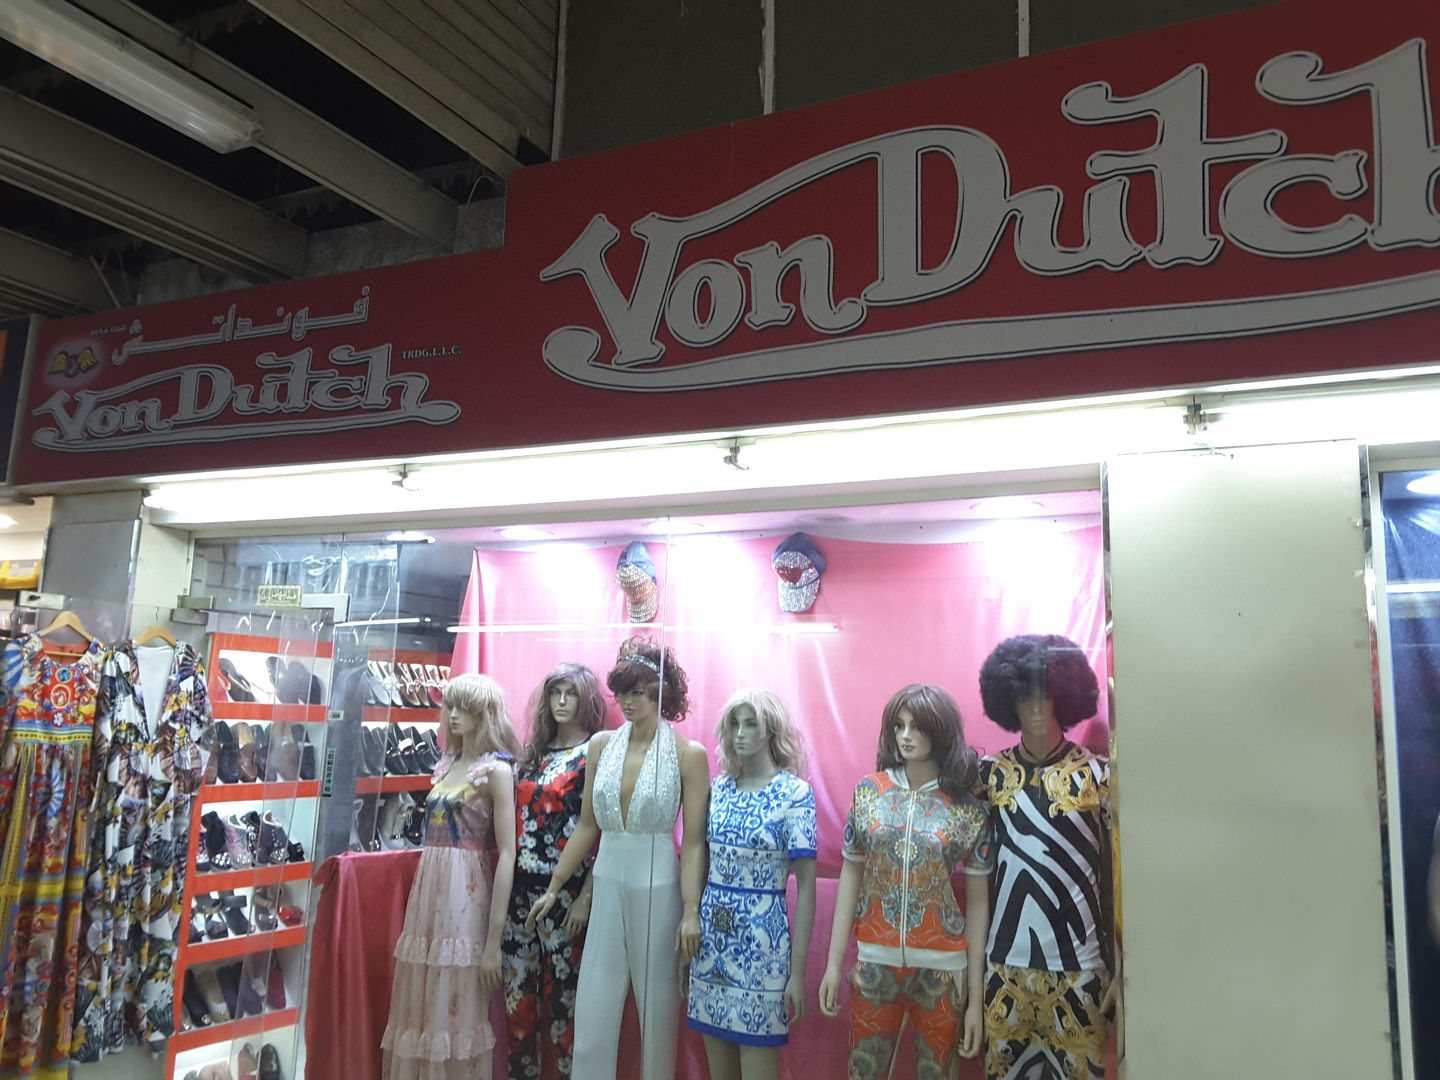 HiDubai-business-vondutch-trading-shopping-fashion-accessories-al-karama-dubai-2